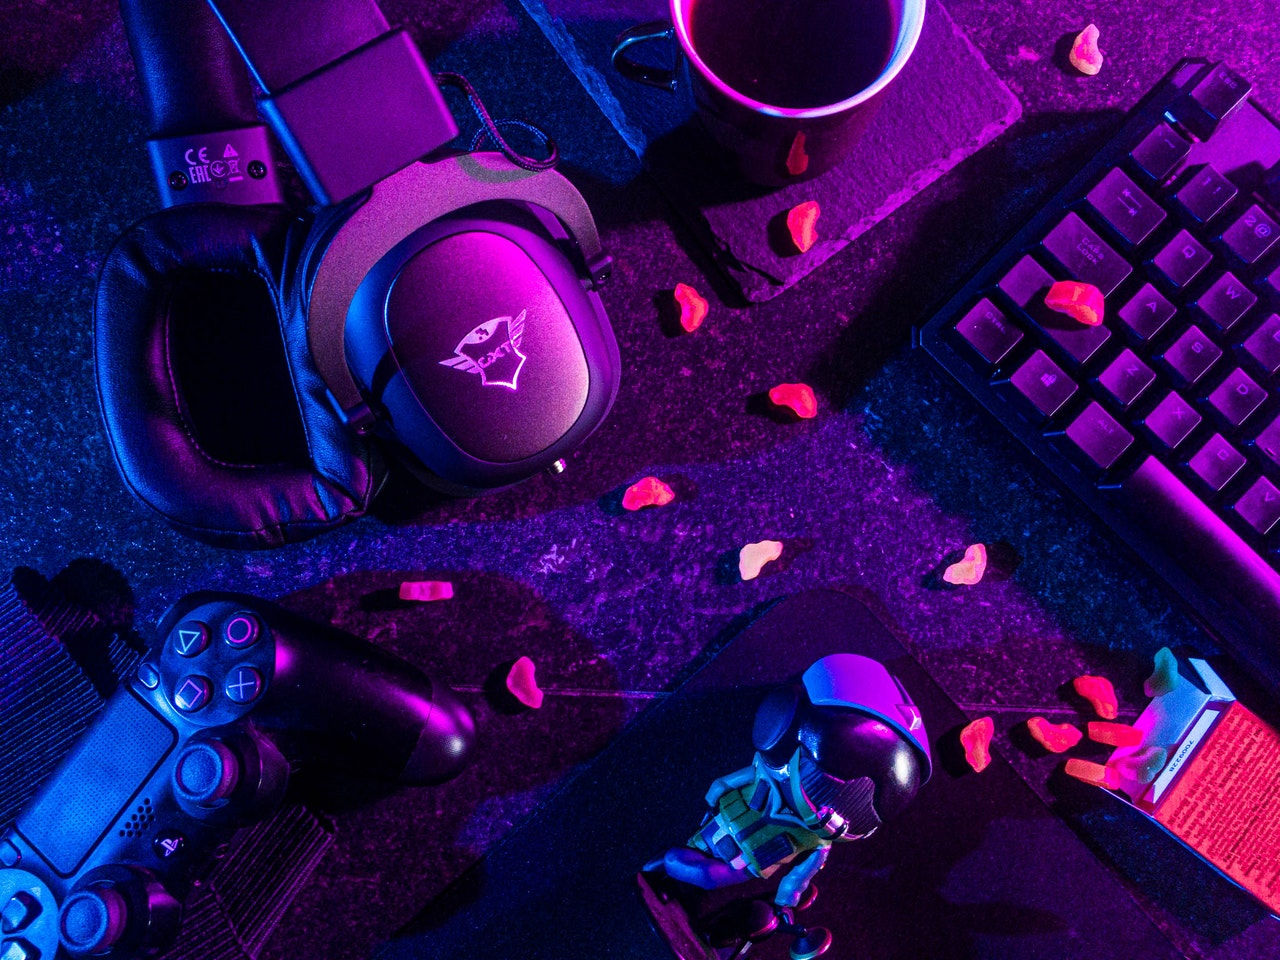 A photograph of a PlayStation controller,  headphones, keyboard, mug of coffee and snacks